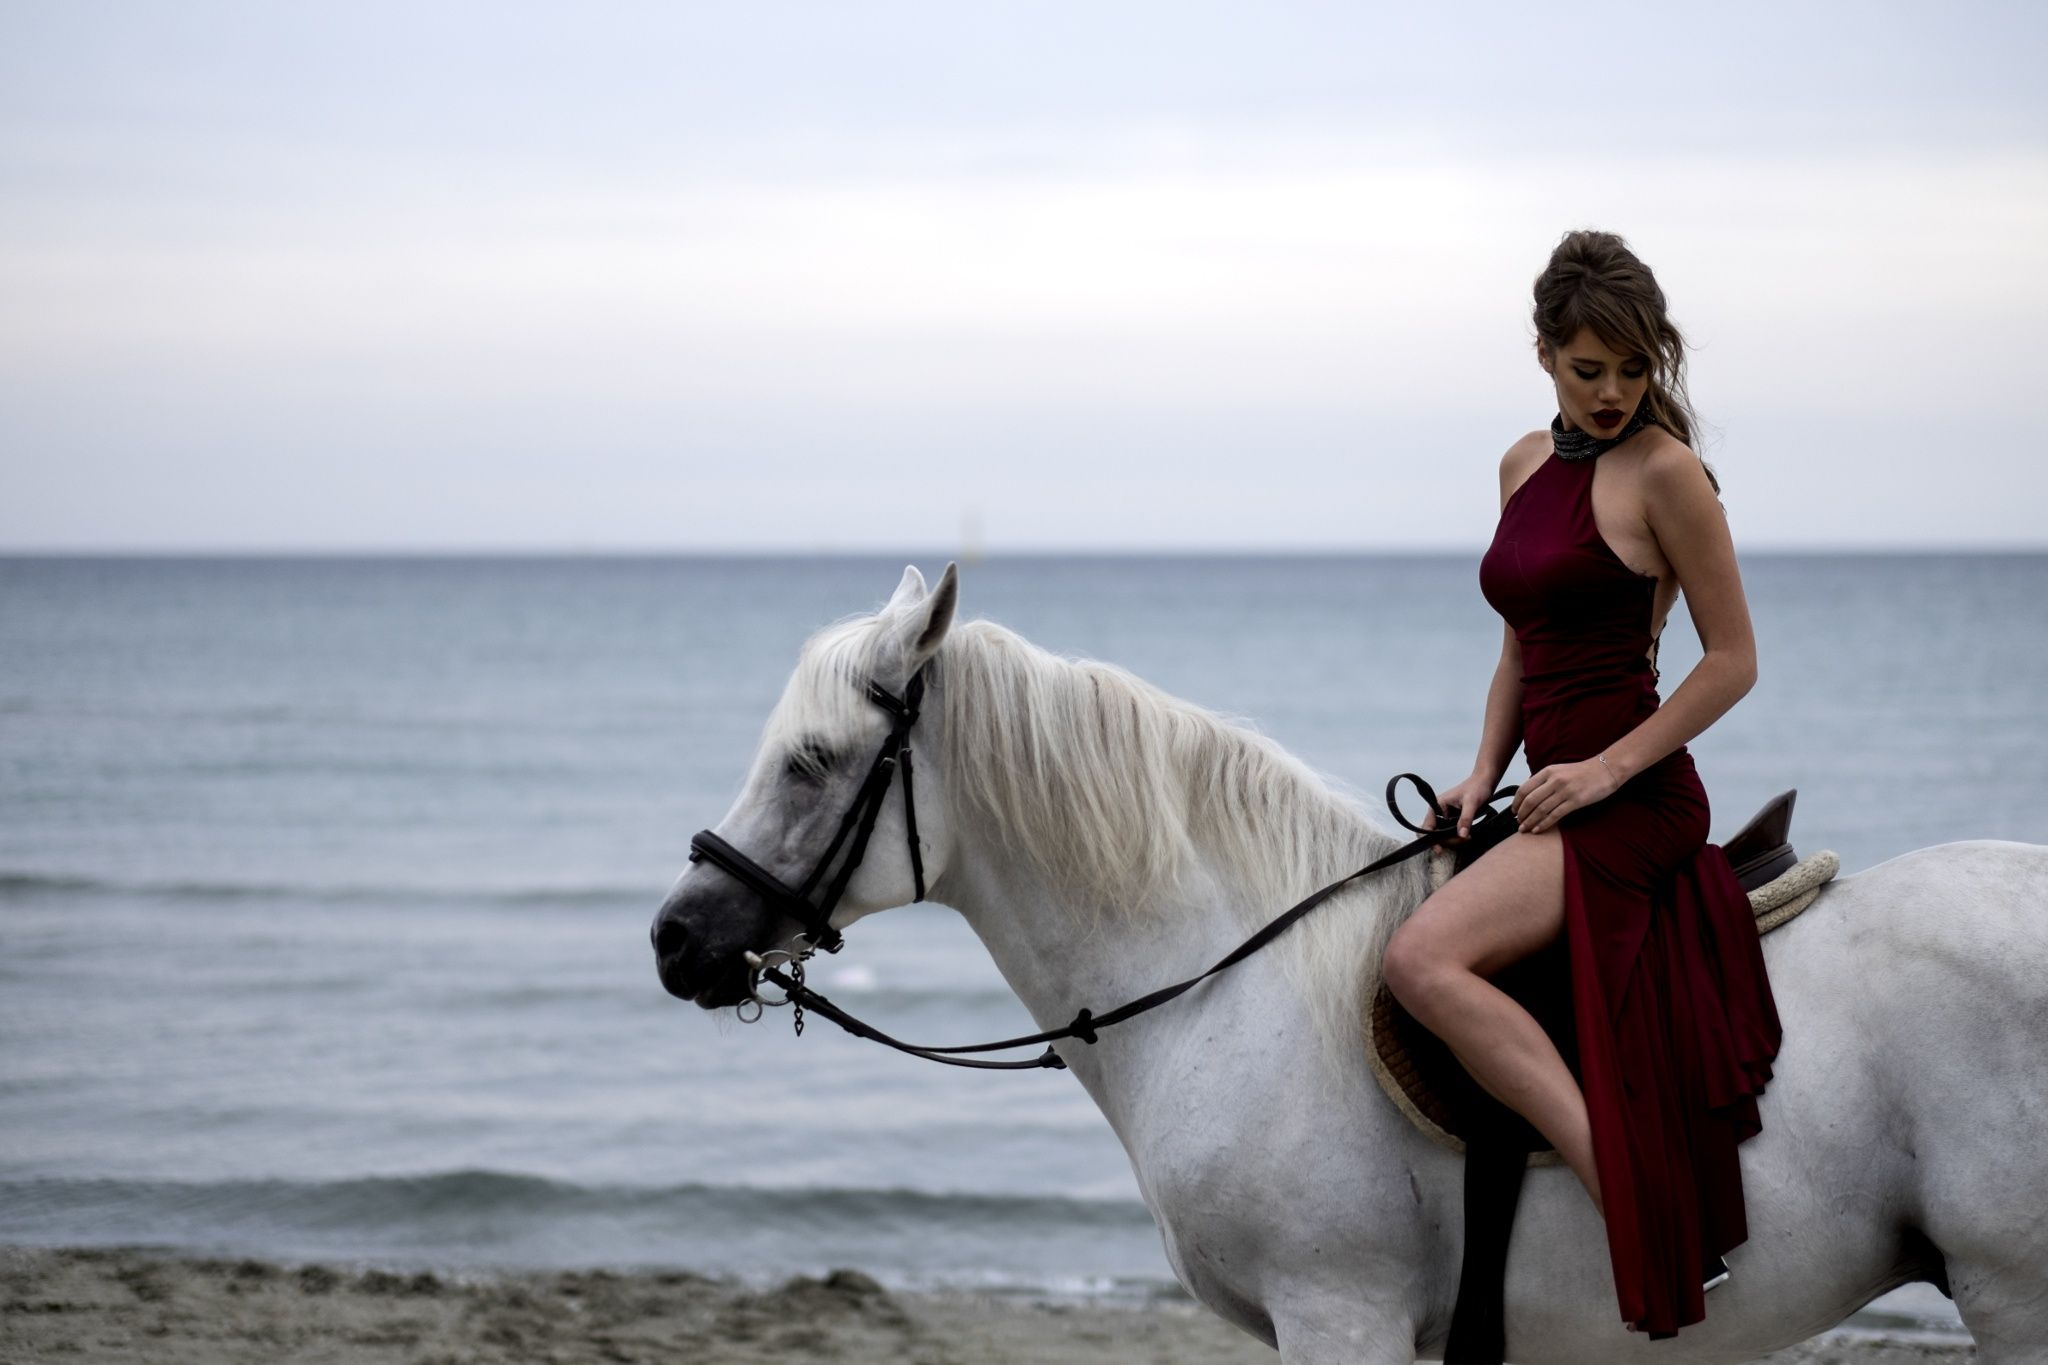 Red Woman By Rizacan Kumas On 500px Horses Horse Photos Horse Riding